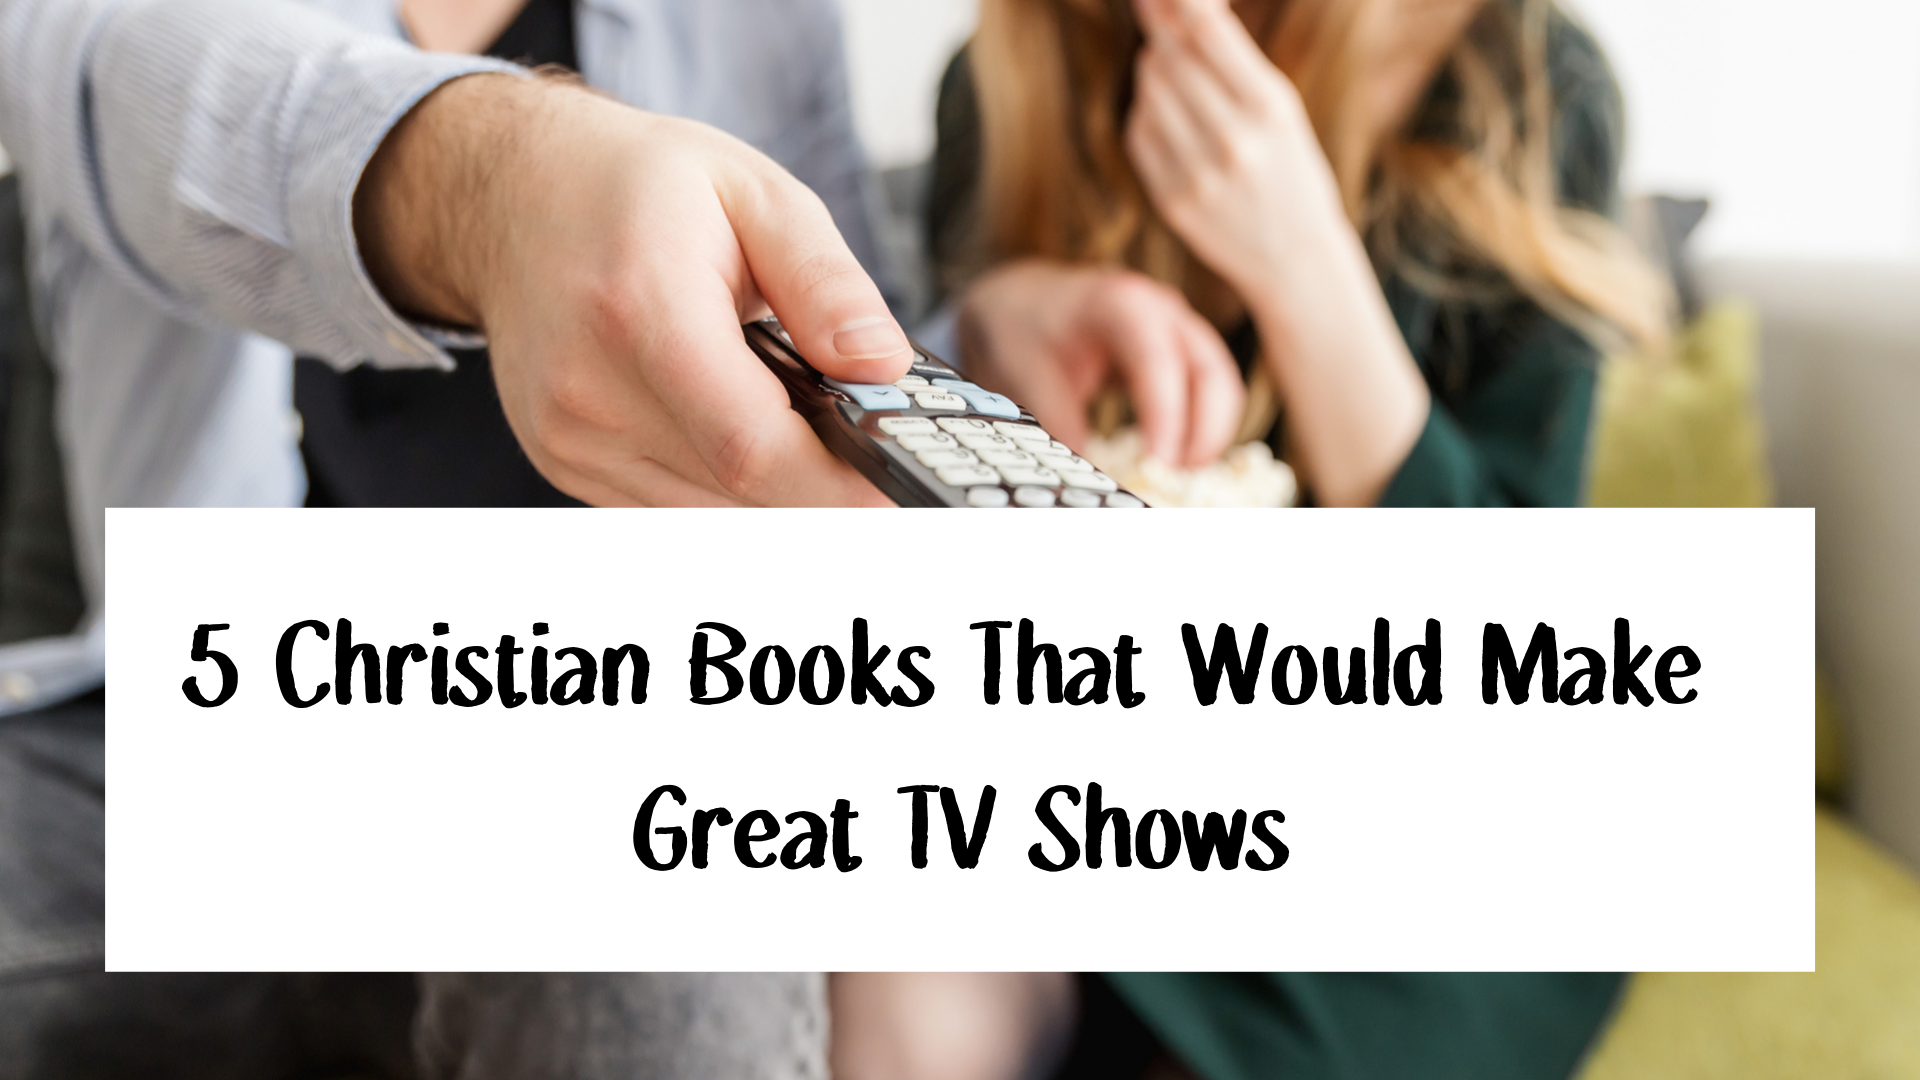 5 Christian Books That Would Make Great TV Shows